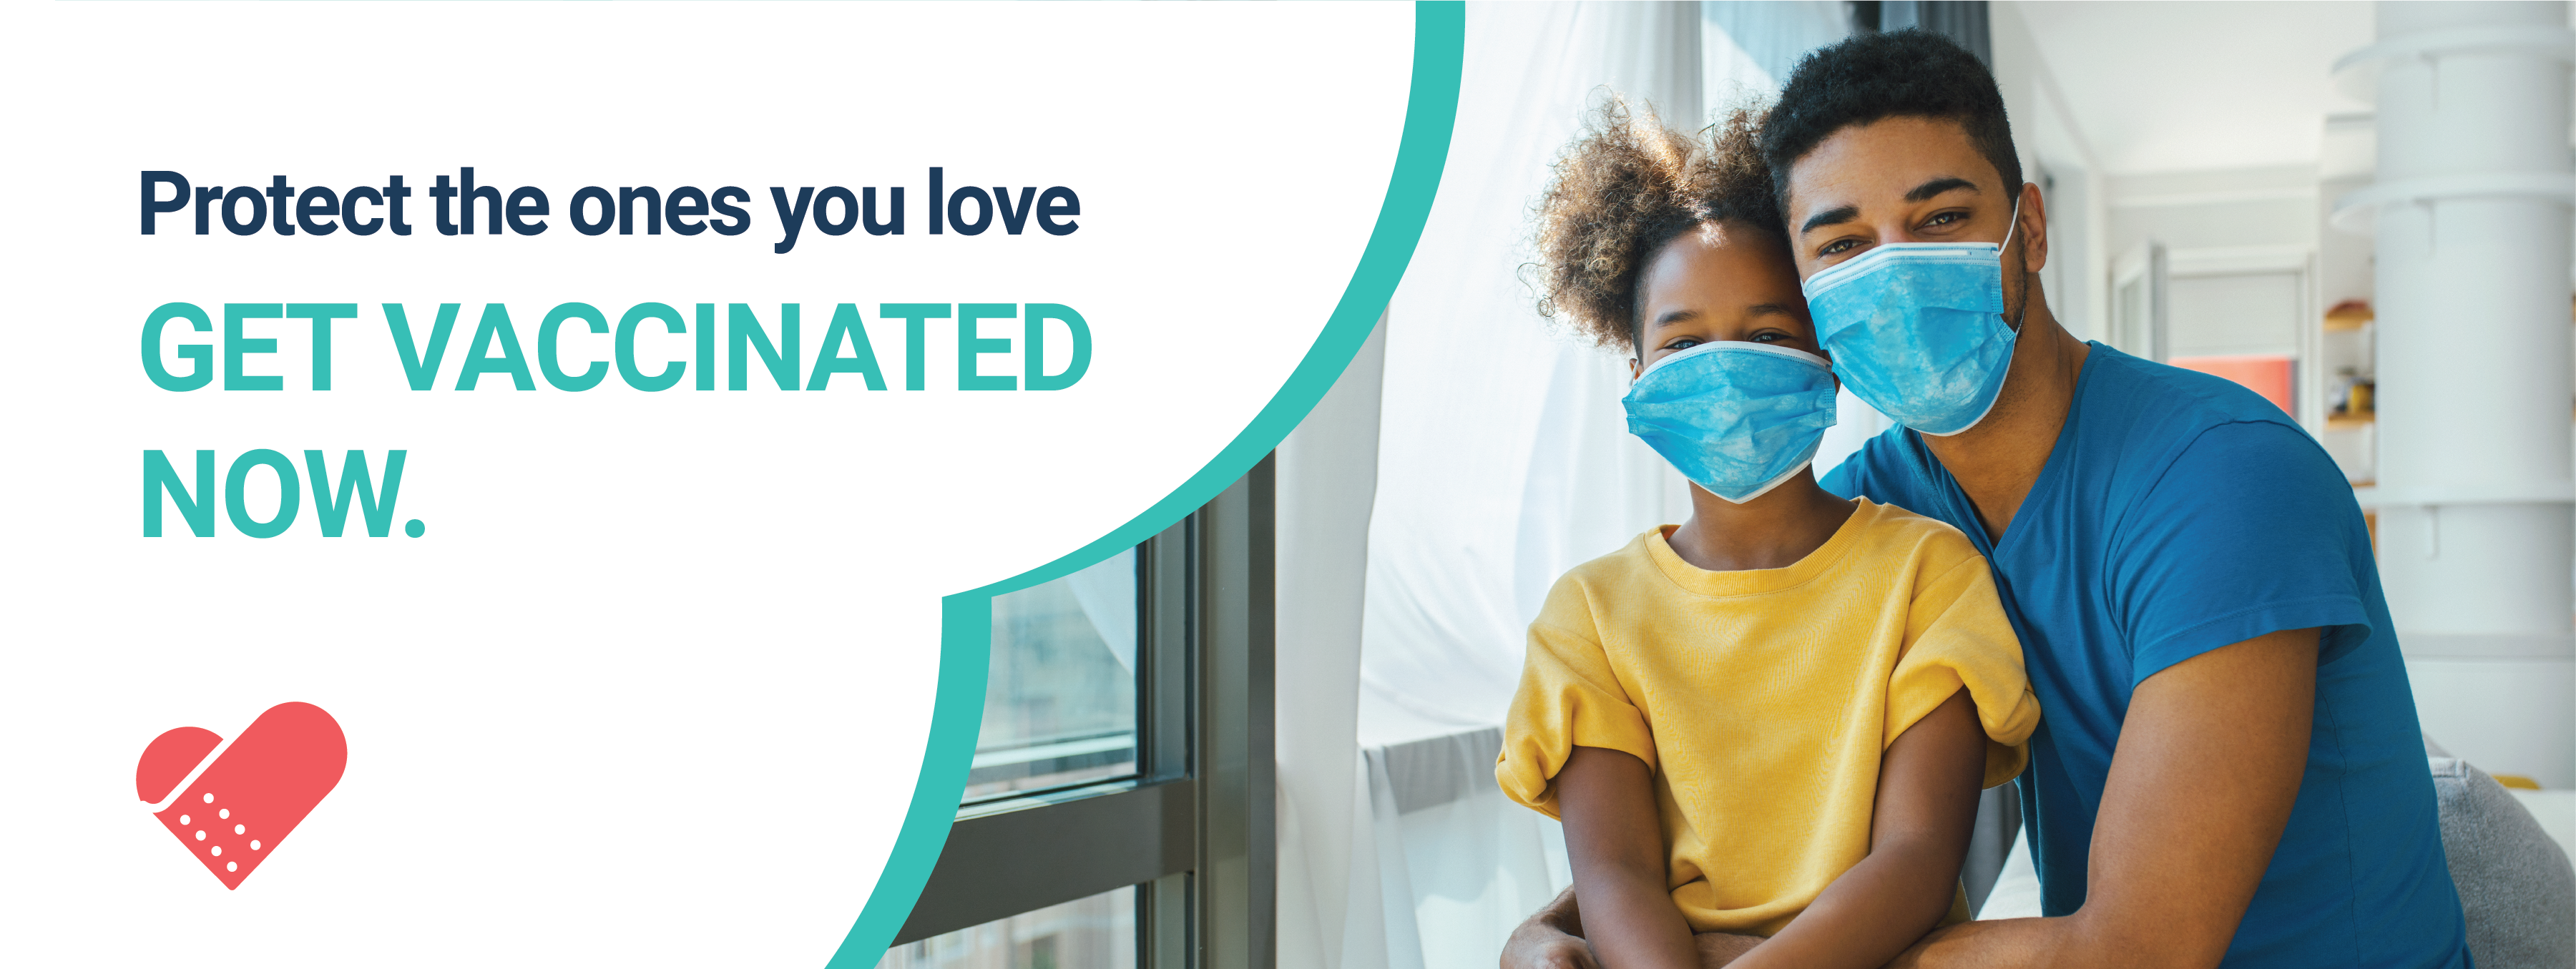 """Picture of a young African America father sitting on a couch, by the window. He hugs his 12-year old daughter. They both wear face masks and seem to be smiling. On the right, an inverted heart design pattern with the words """"Protect the ones you love. Get Vaccinated Now."""". At the bottom, the campaign logo, a band-aid in the form of a heart."""